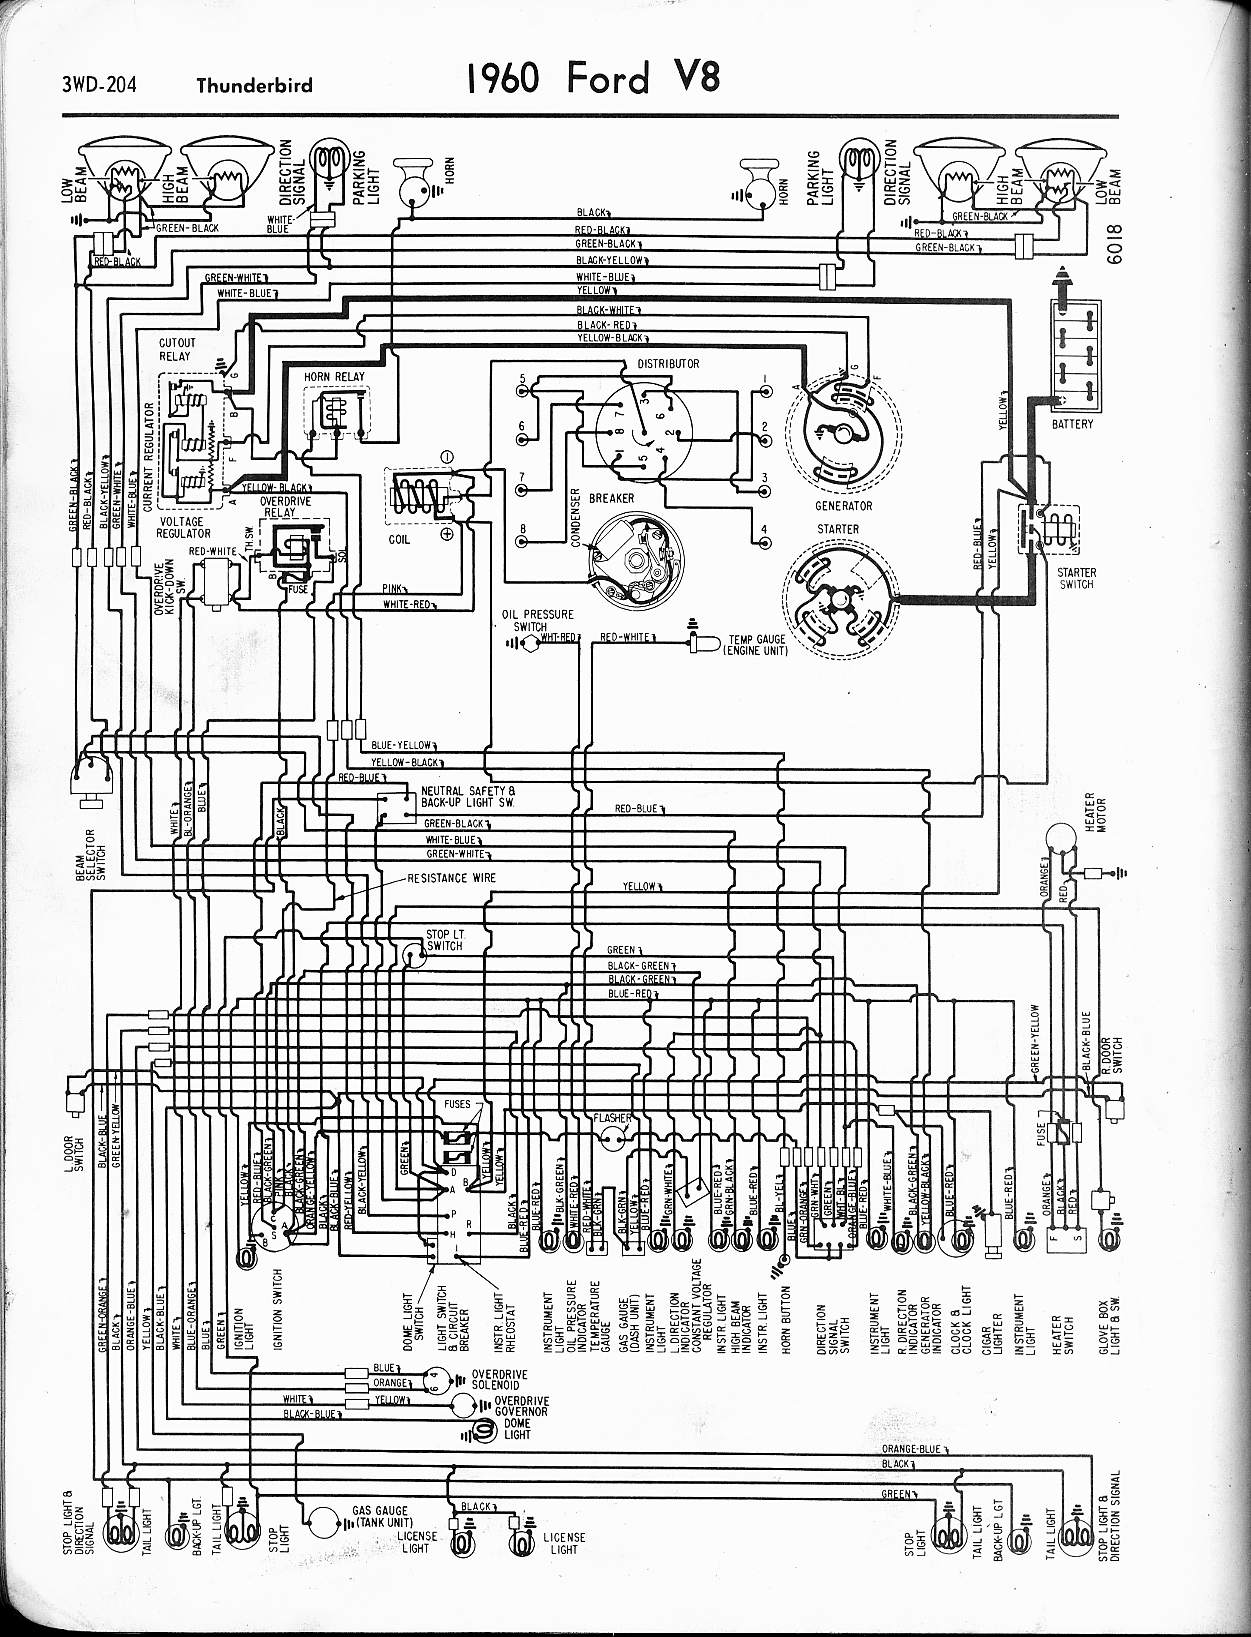 1980 Ford Thunderbird Wiring Diagram Starting Know About 1977 Minn Kota 1956 Simple Rh David Huggett Co Uk